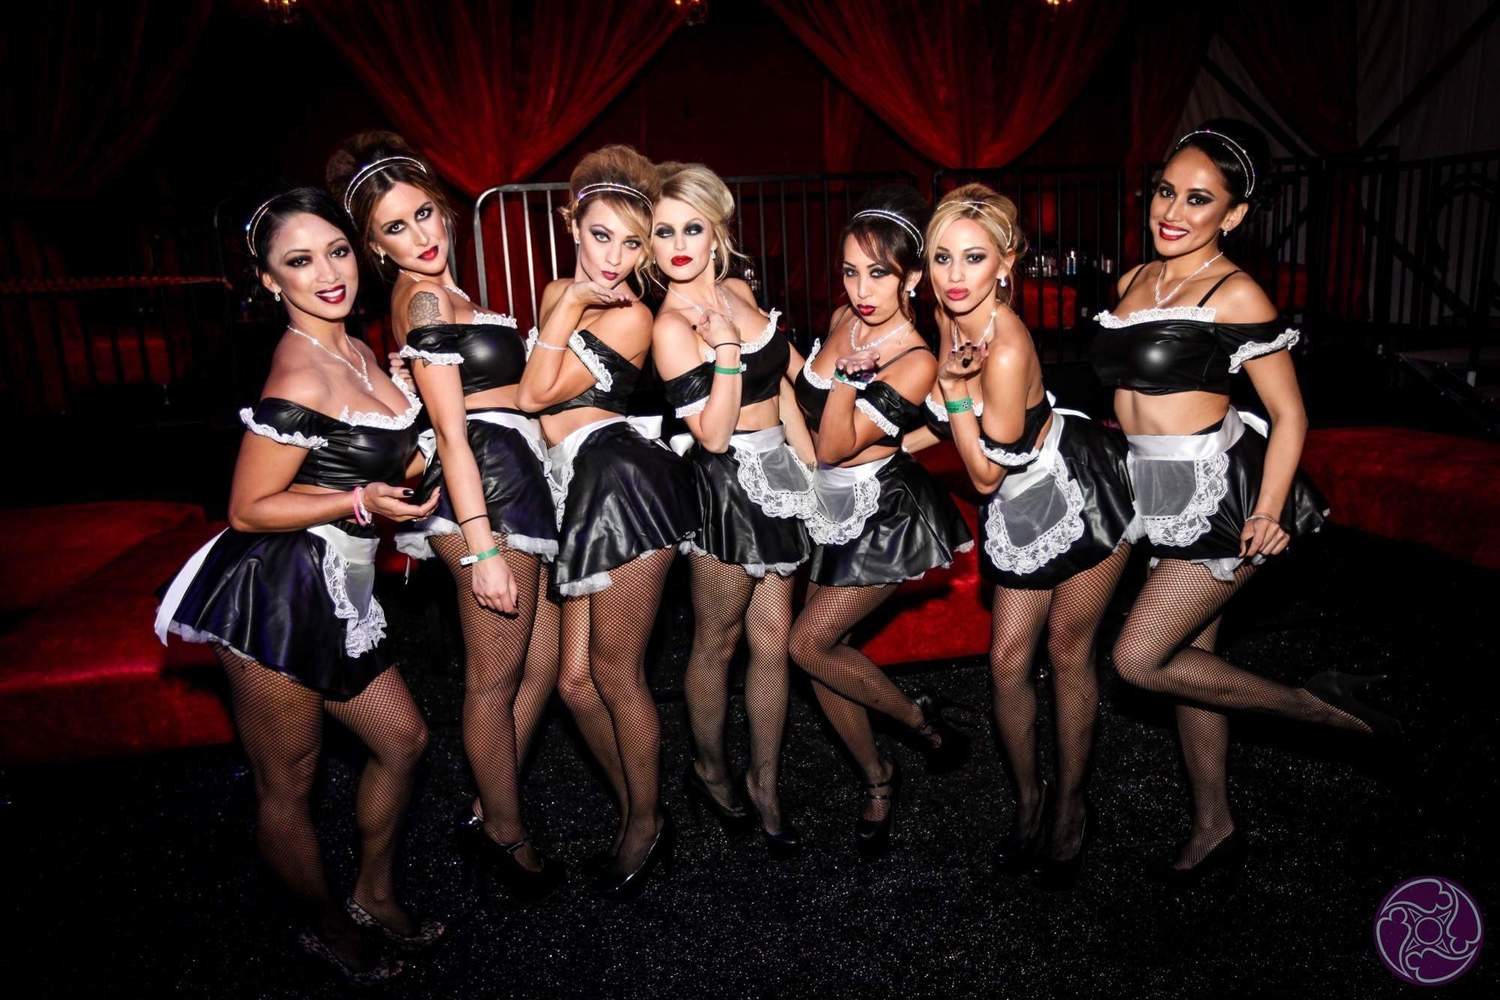 Group picture of the Maxim Magazine Halloween Party Hostesses